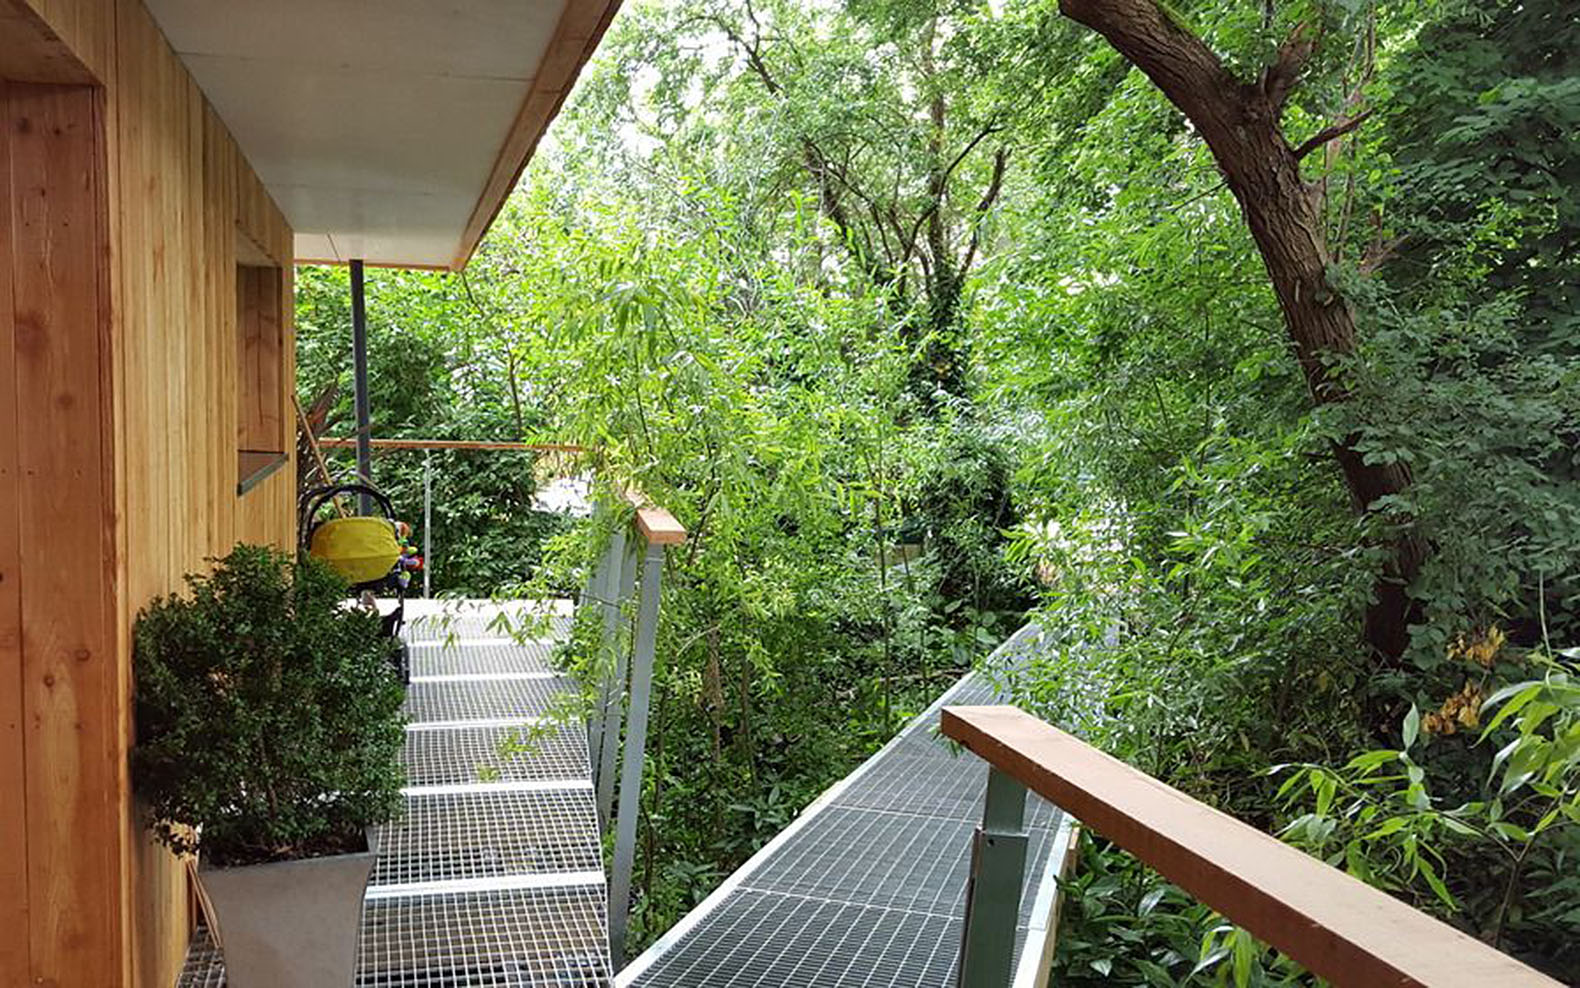 This Clever Treehouse Was Designed To Get Around Natural Obstacles